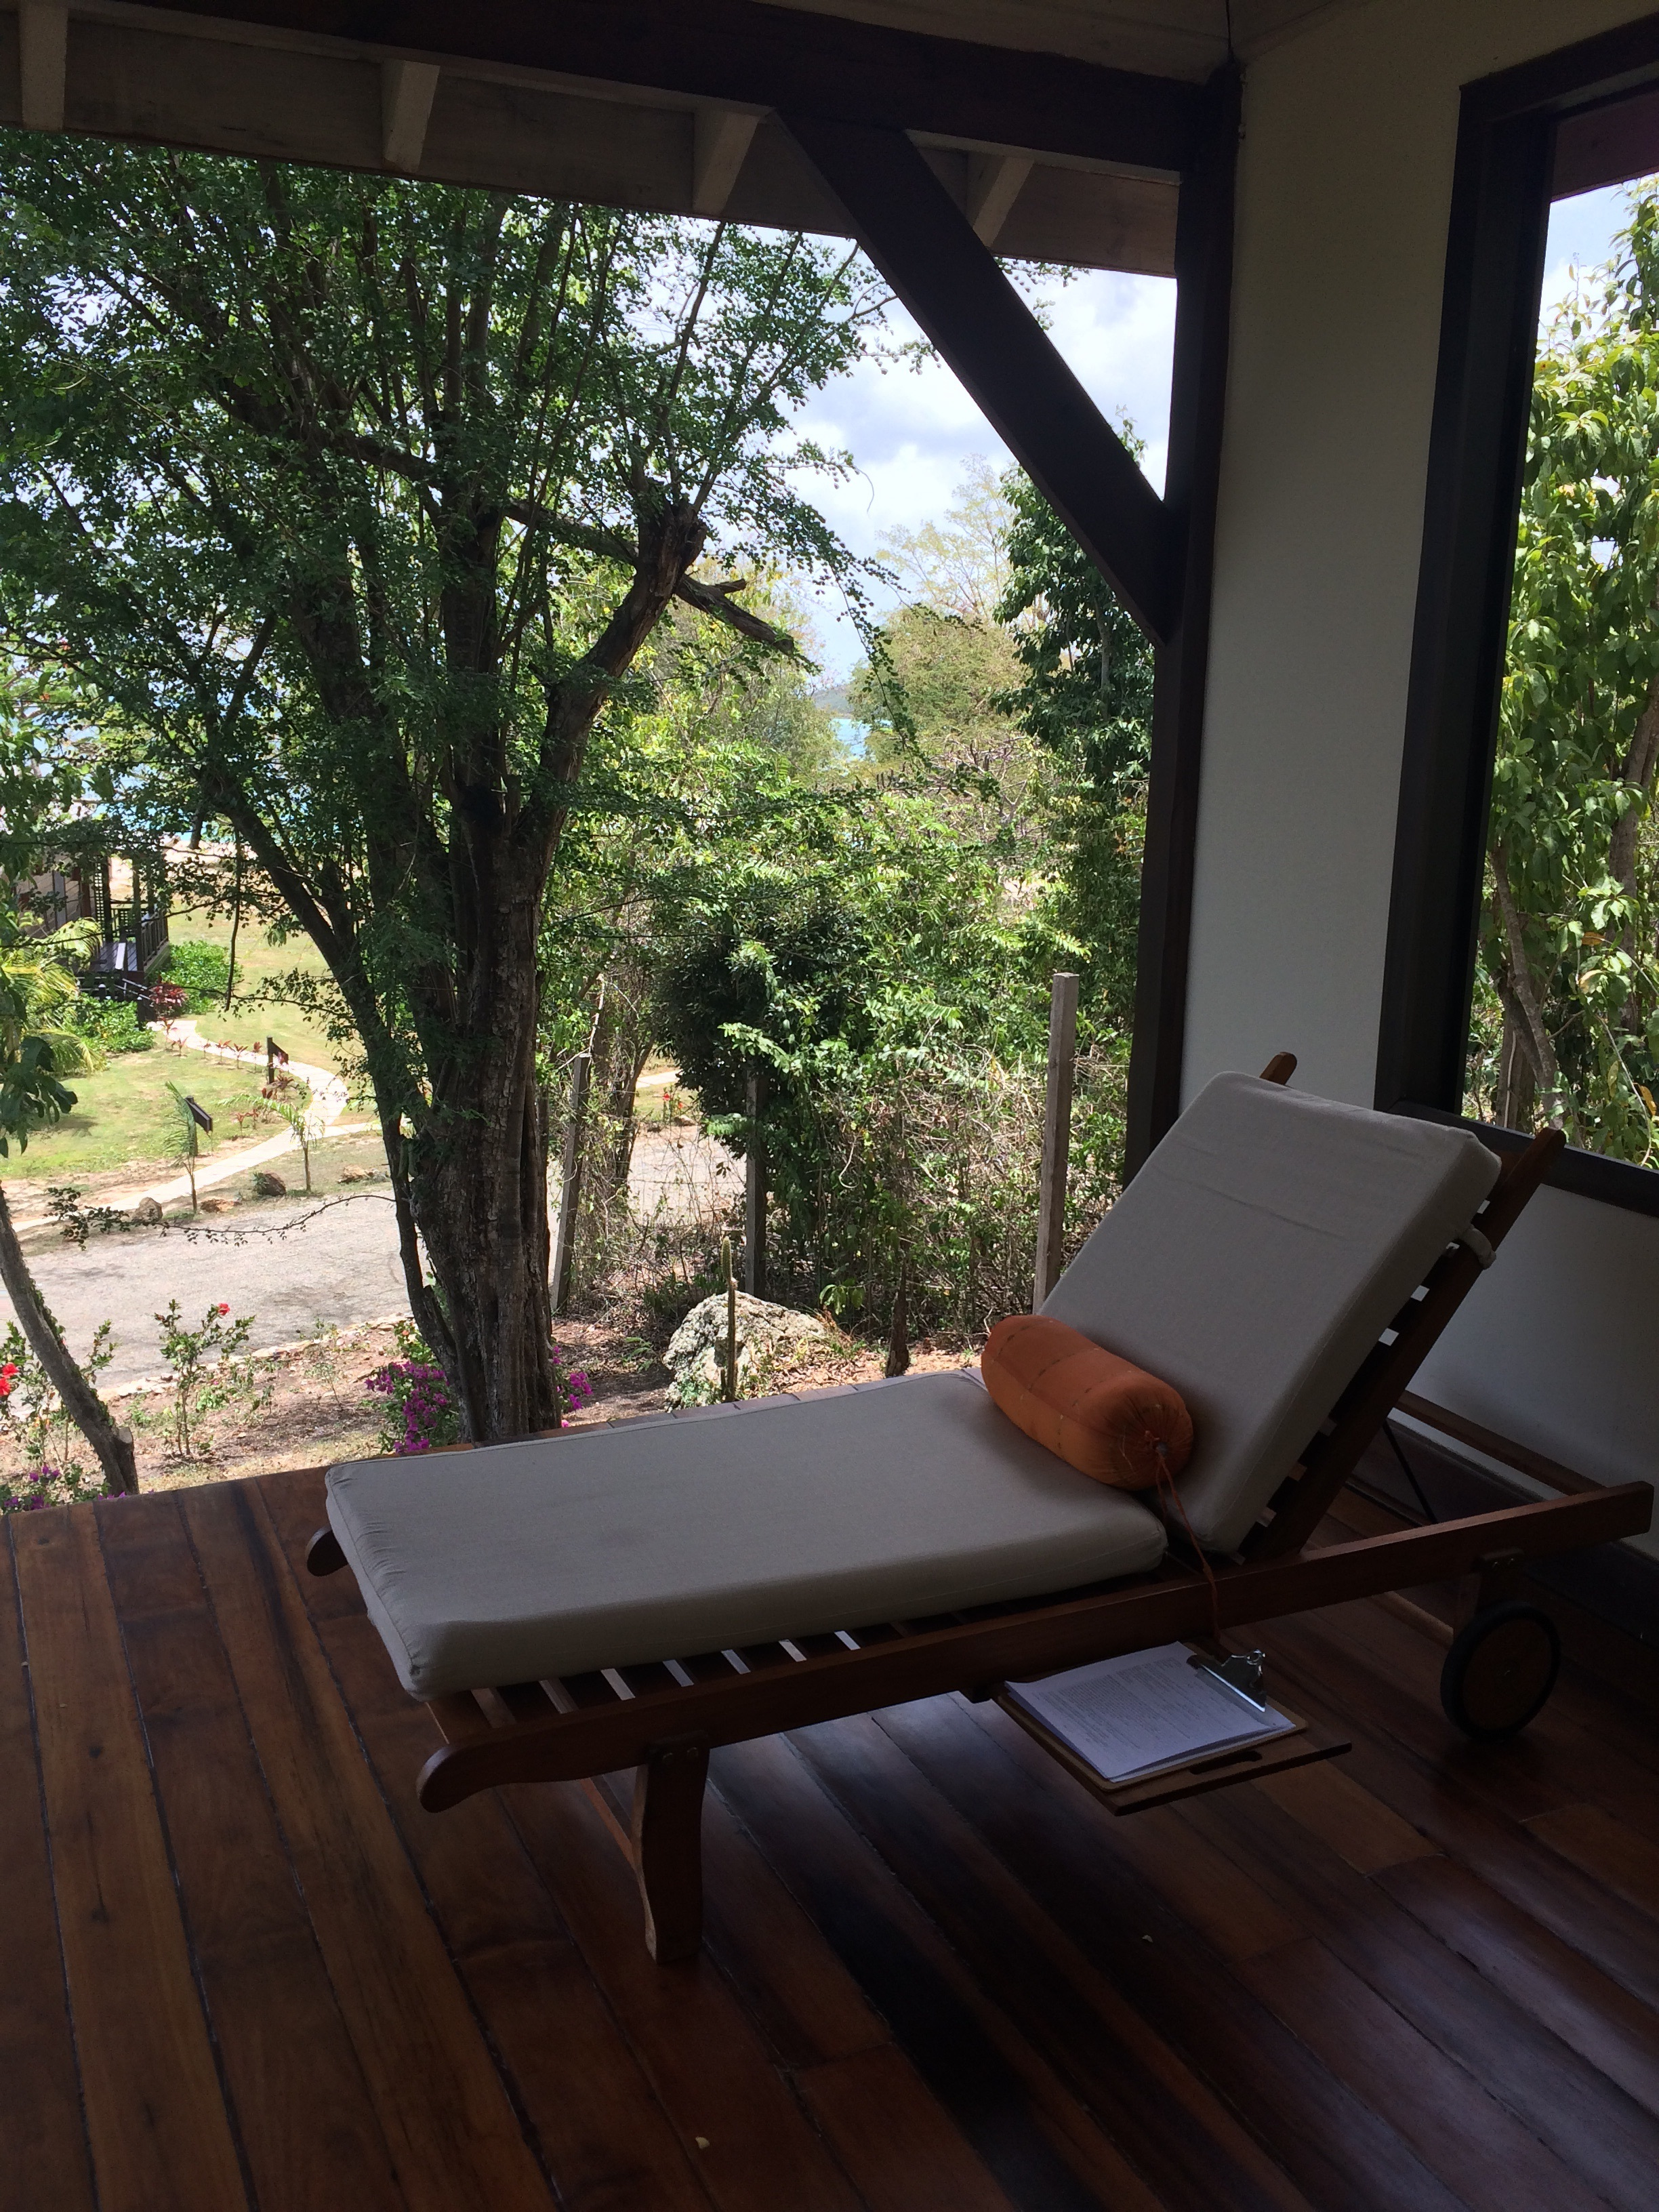 The open-air relaxation room at the Hermitage Bay spa.